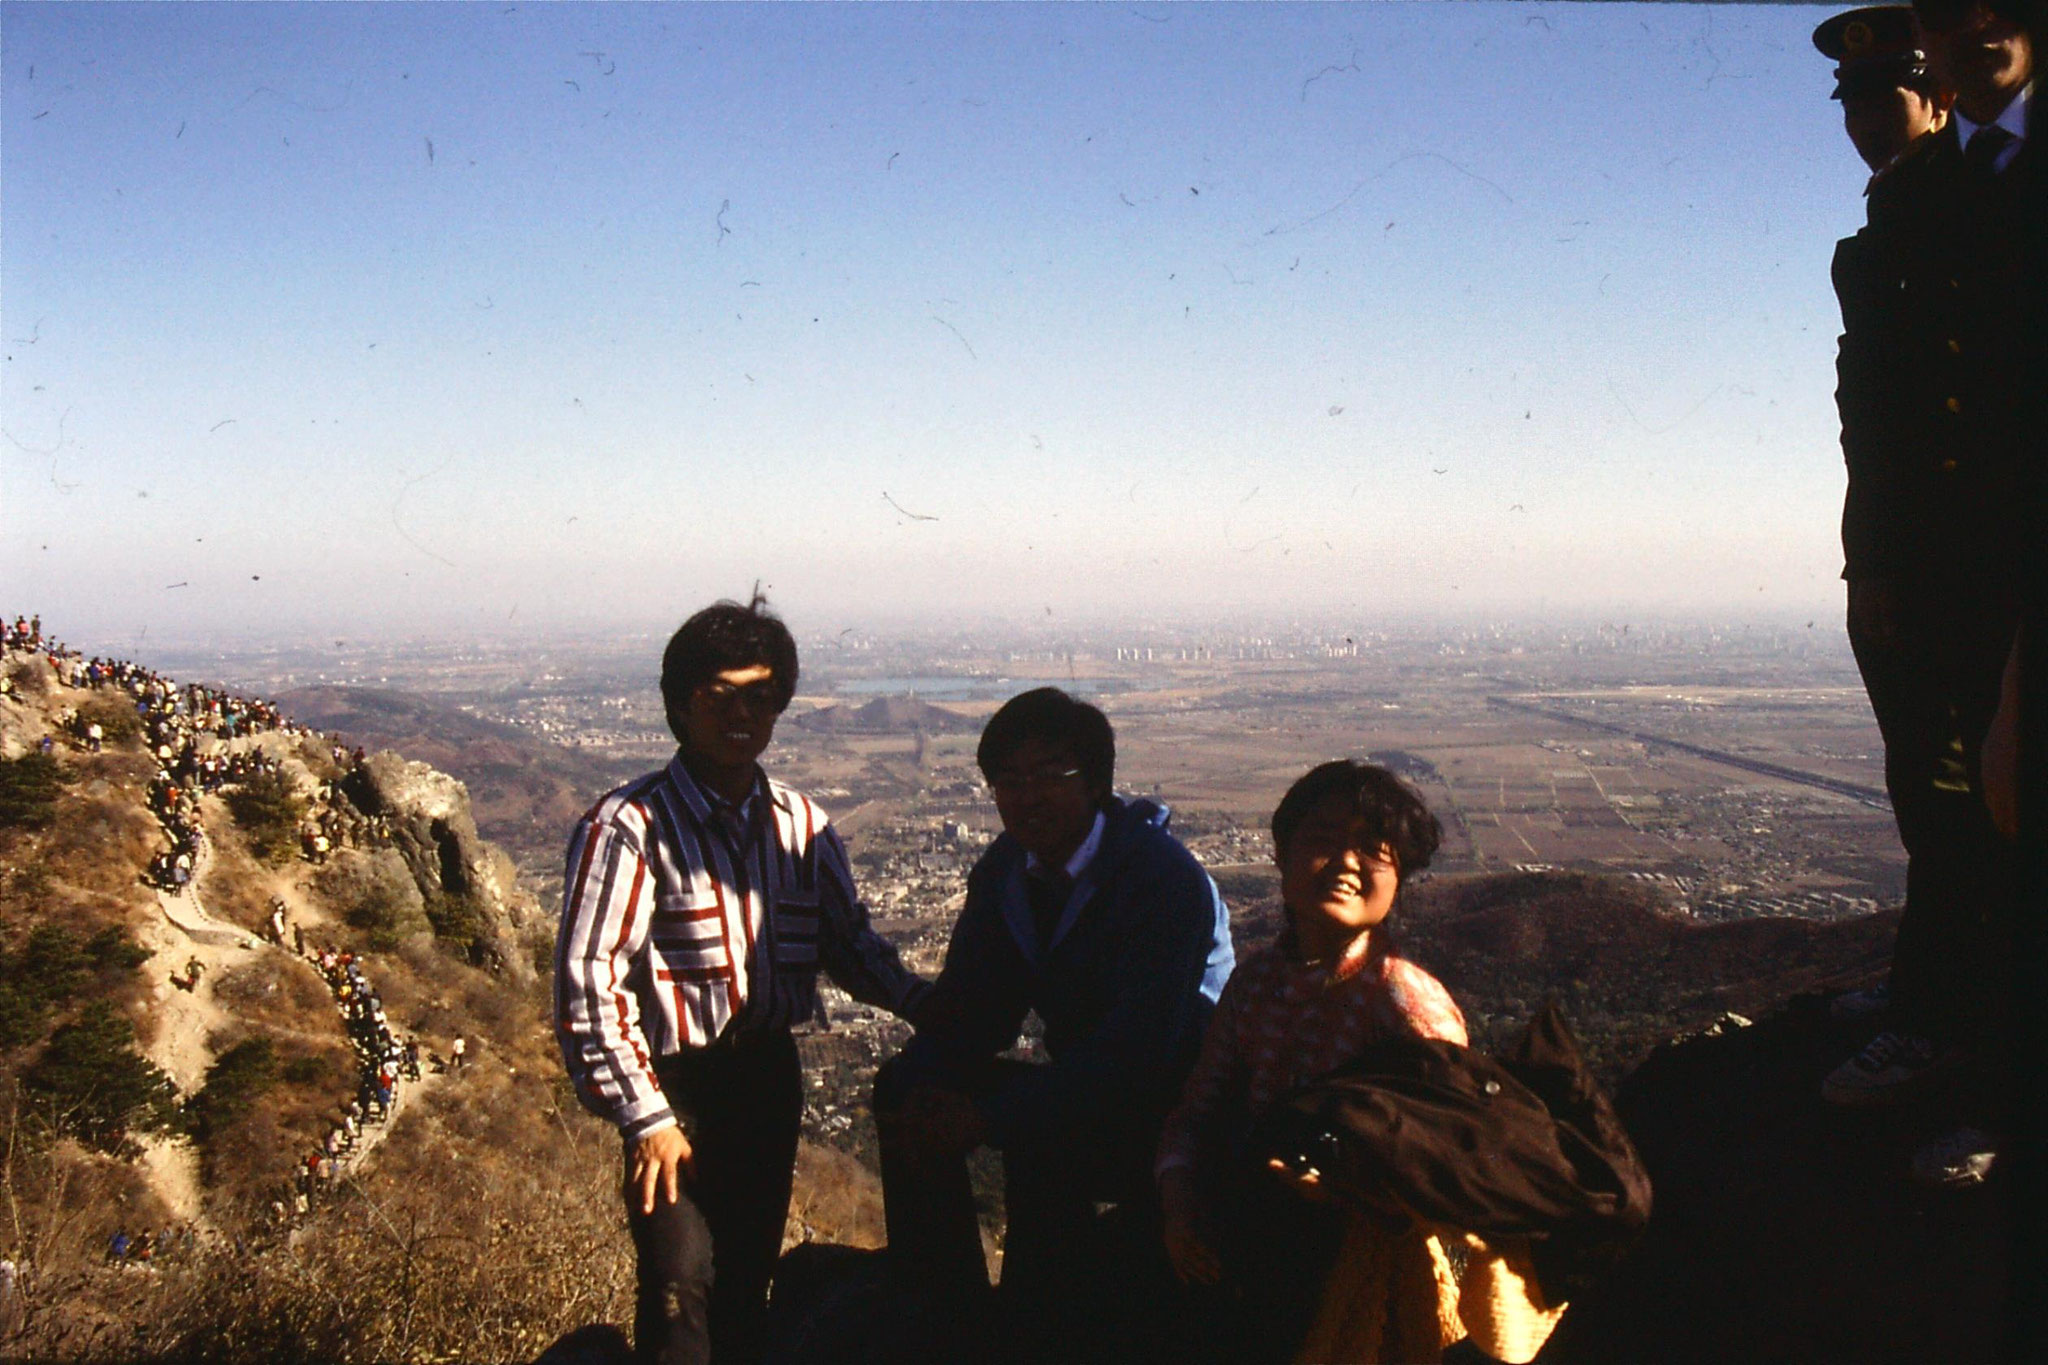 6/11/1988: 32: outing to Xiangshan